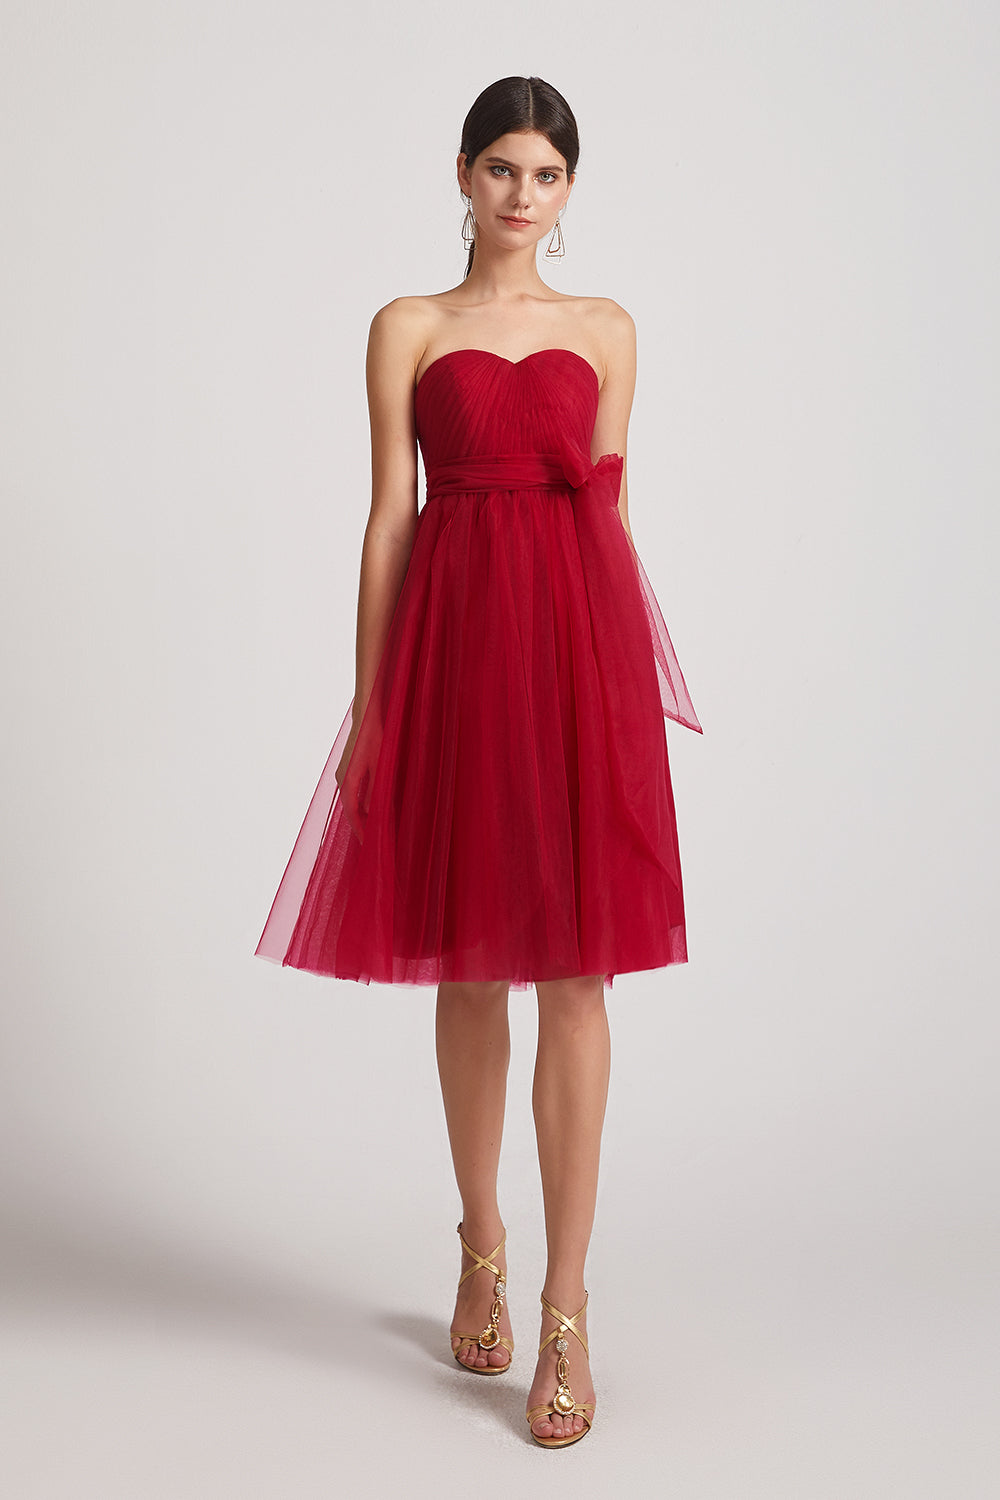 red pleated short bridesmaids dresses